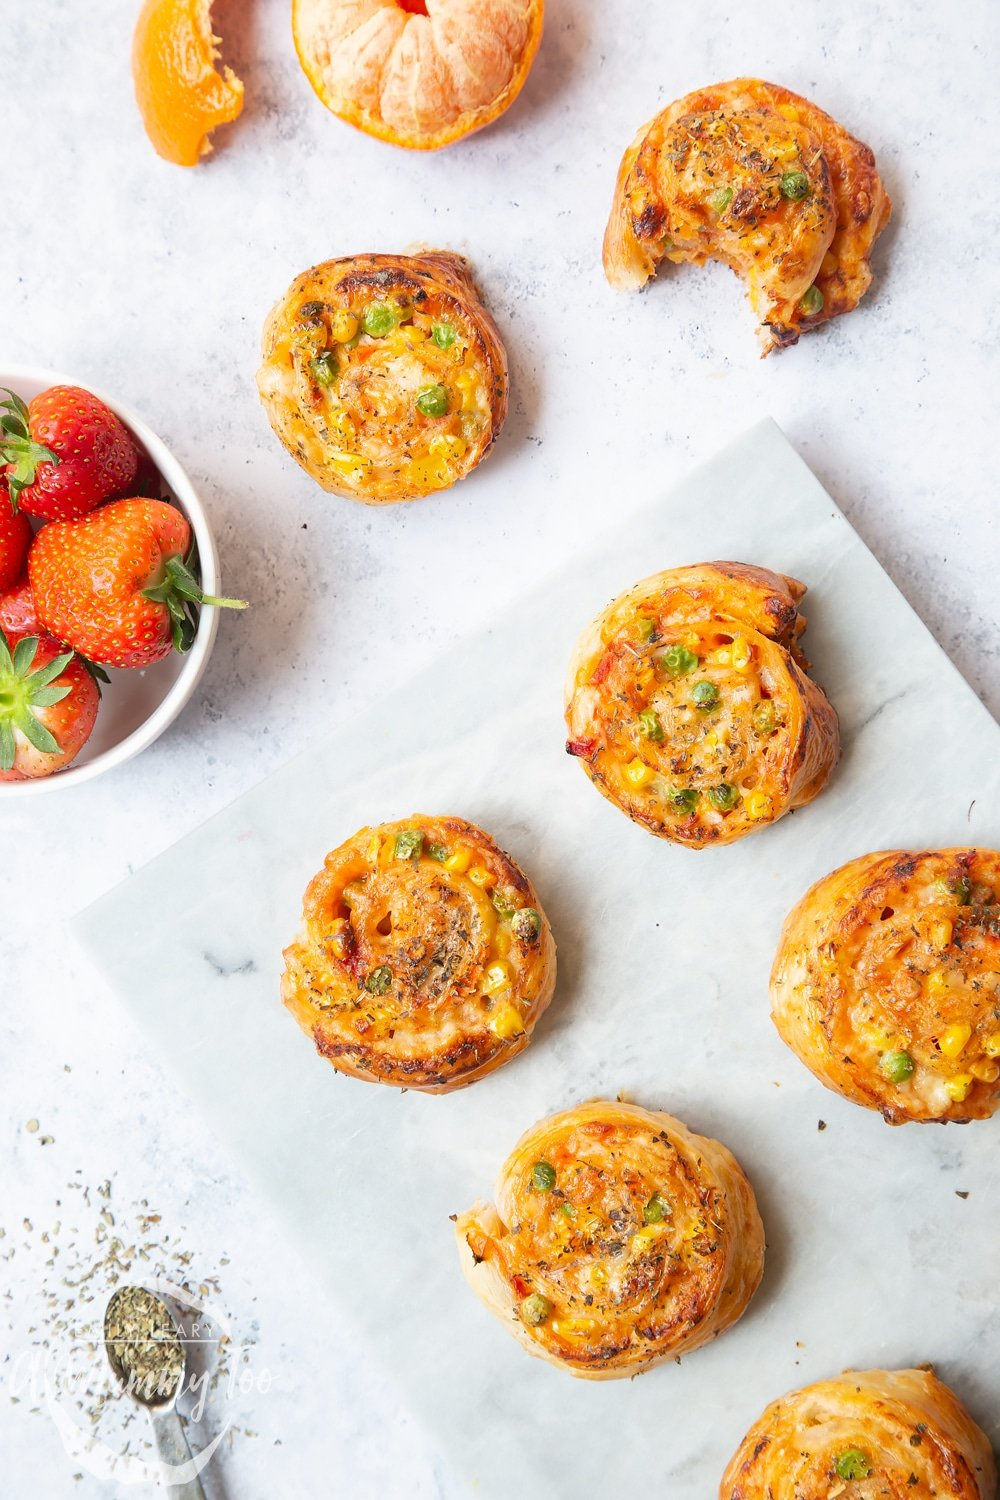 Enjoy these tasty veggie pizza roll-ups with friends and family! Served with strawberries and oranges for a lunch time snack.